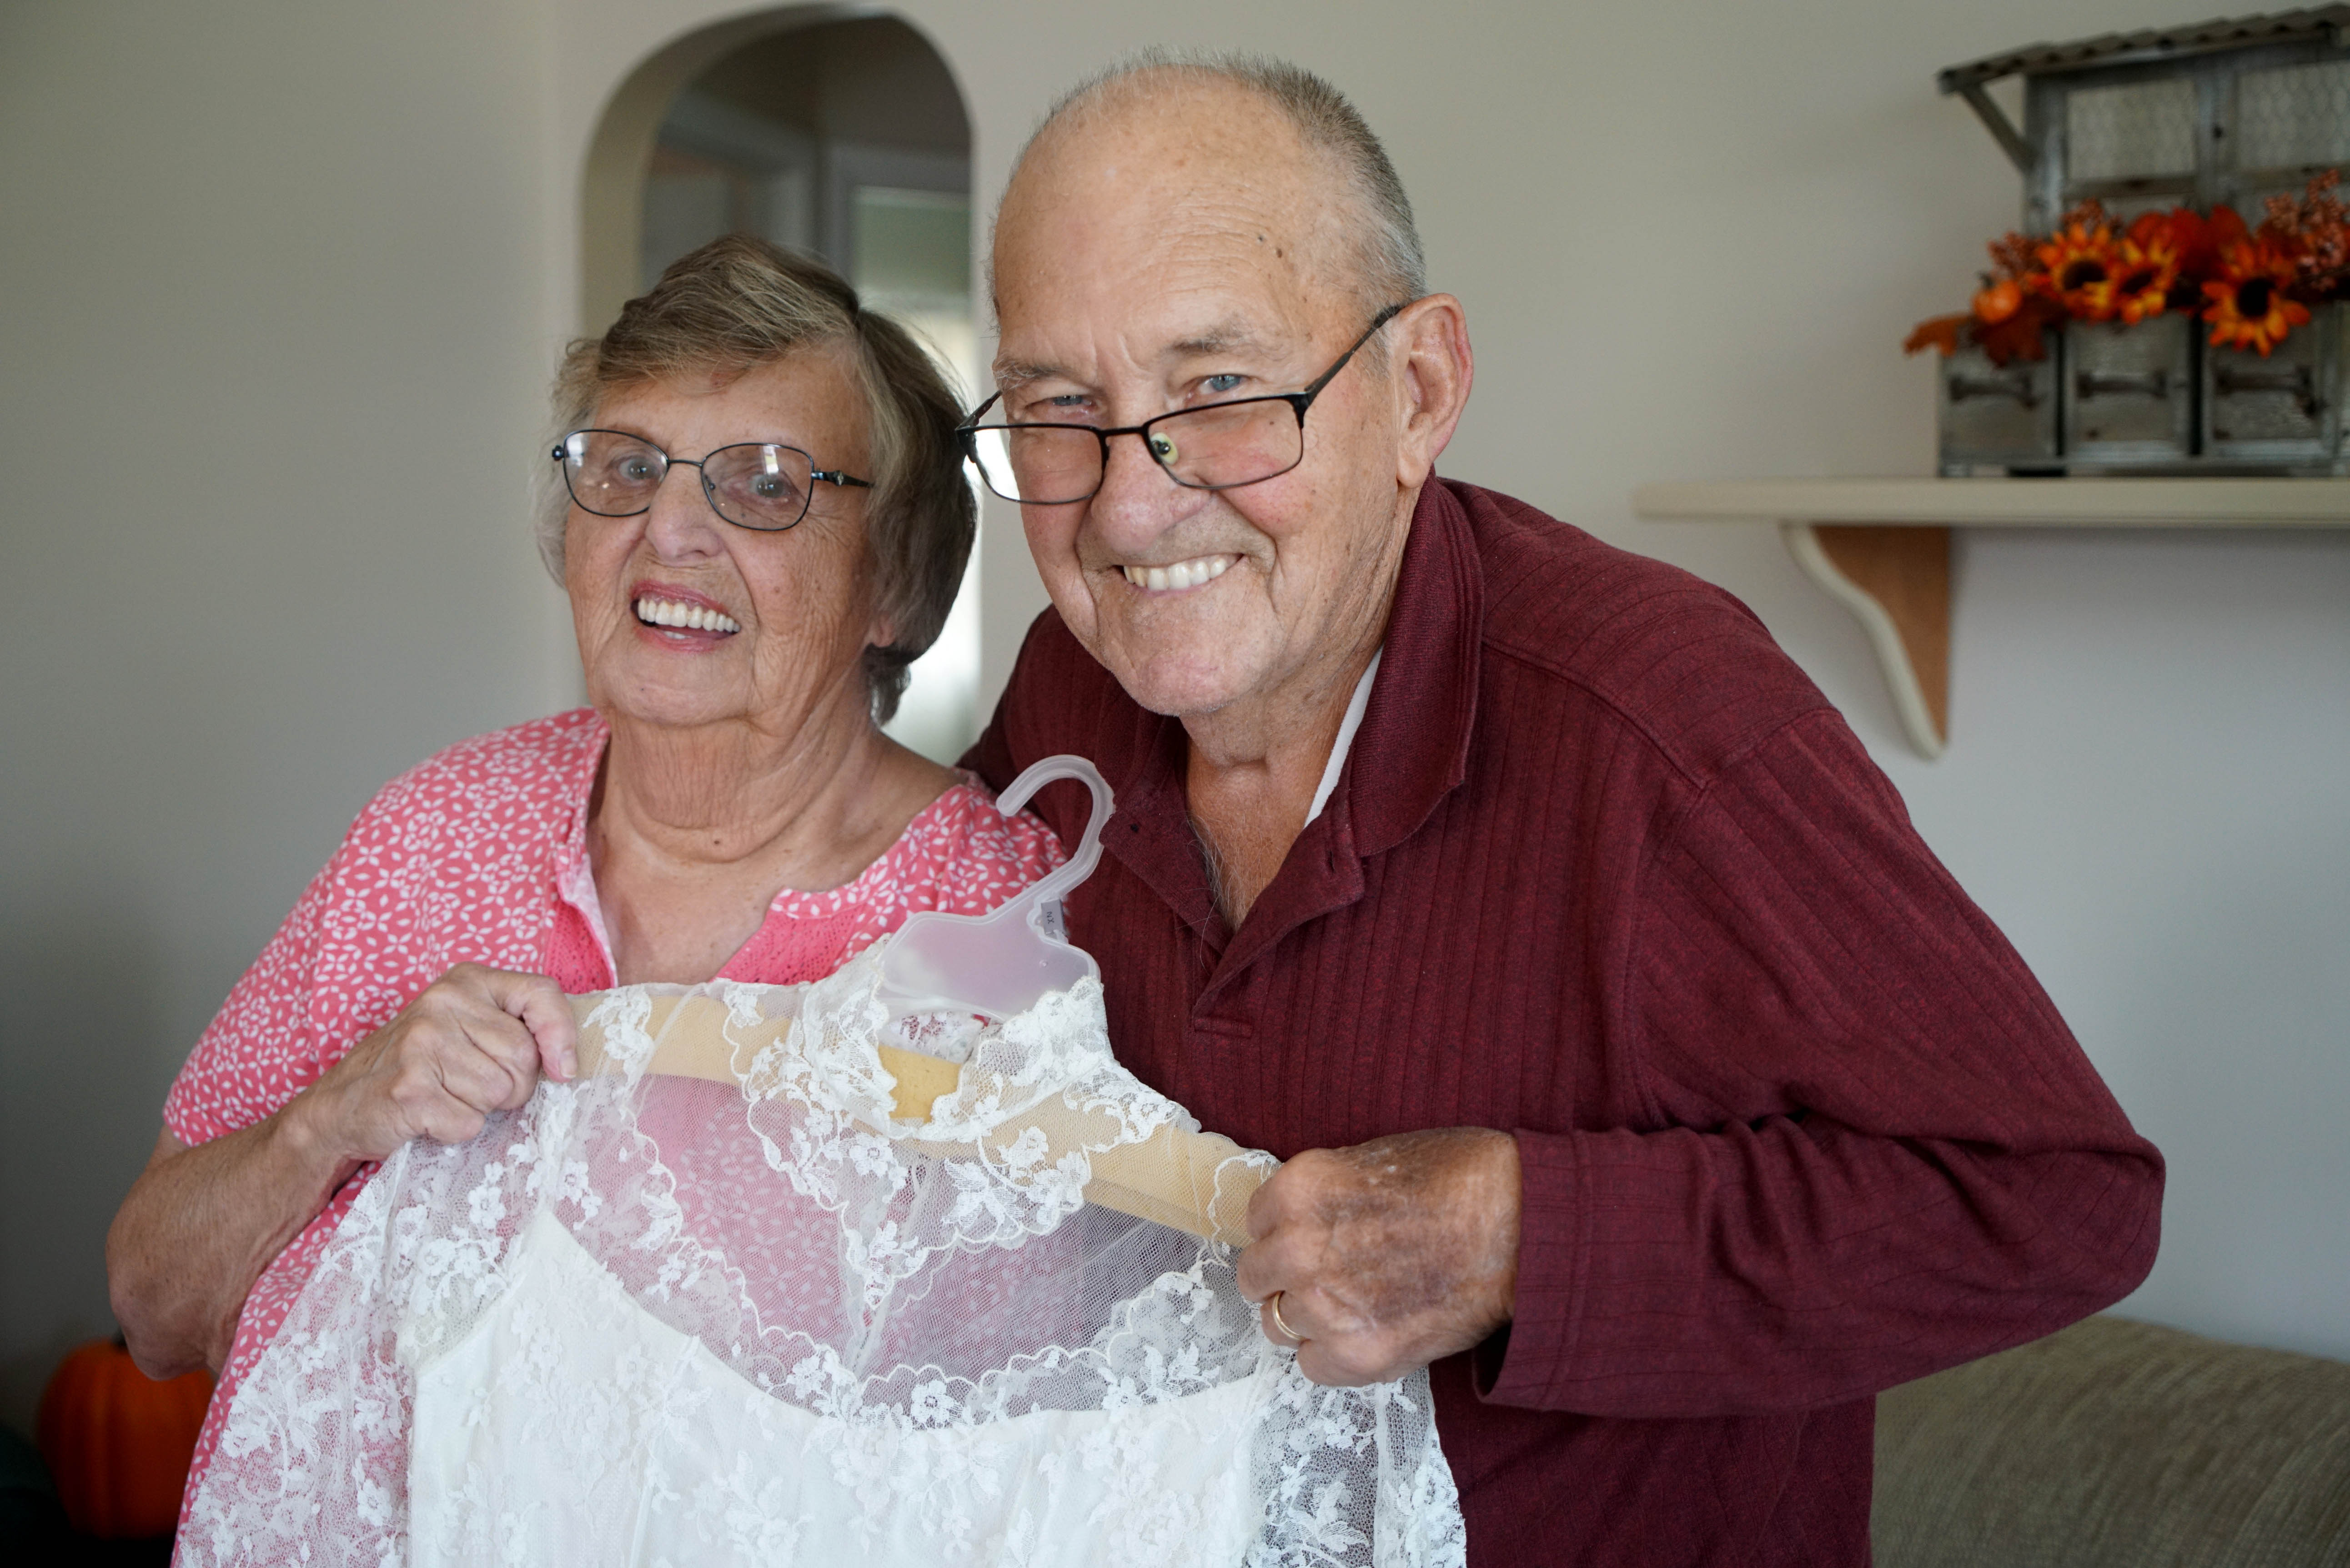 They have been married for 60 years